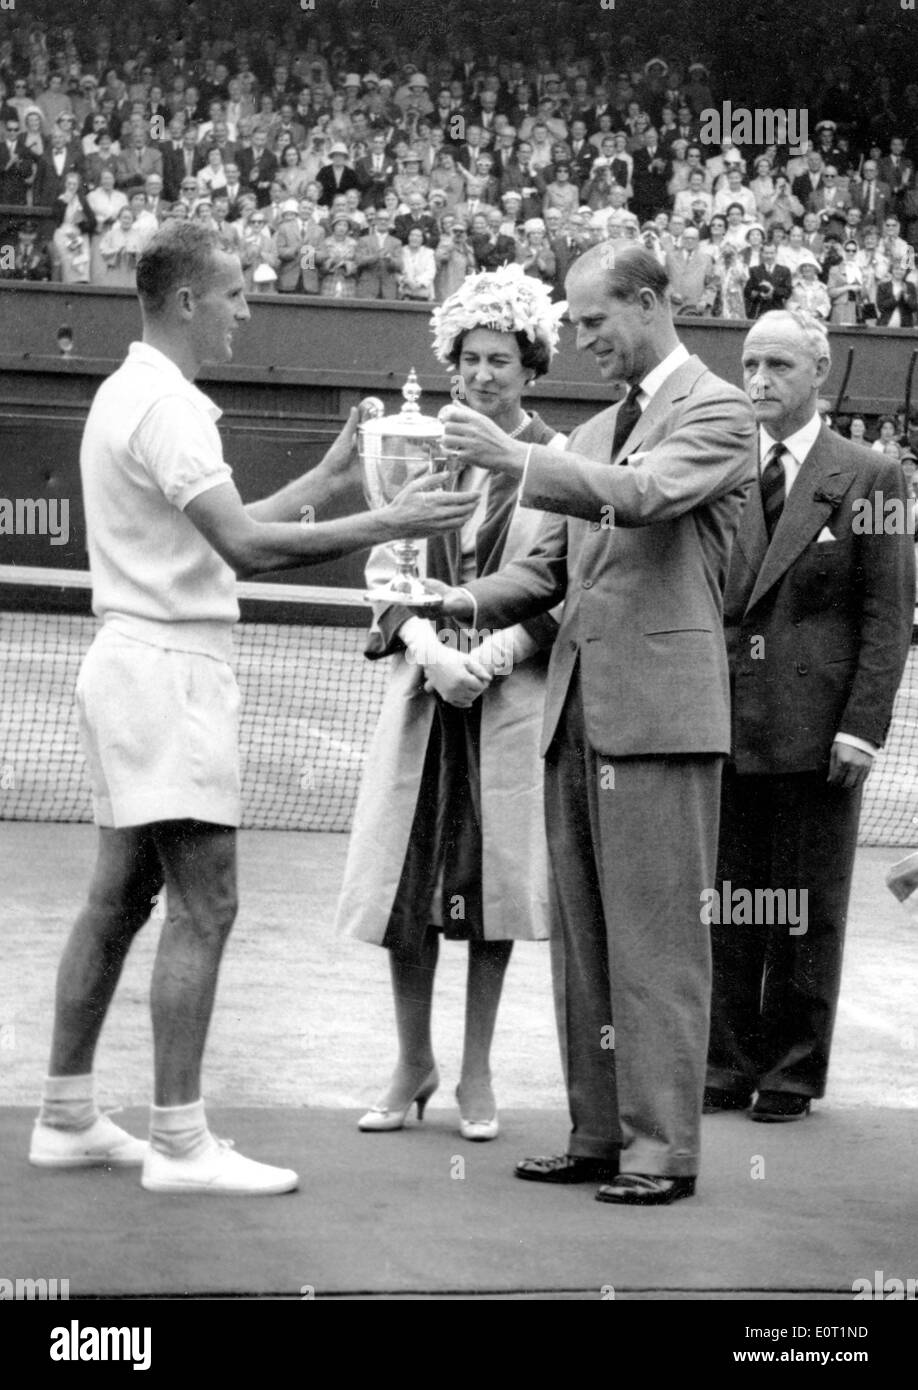 Prince Philip awards Neale Fraser with Wimbledon Cup Stock